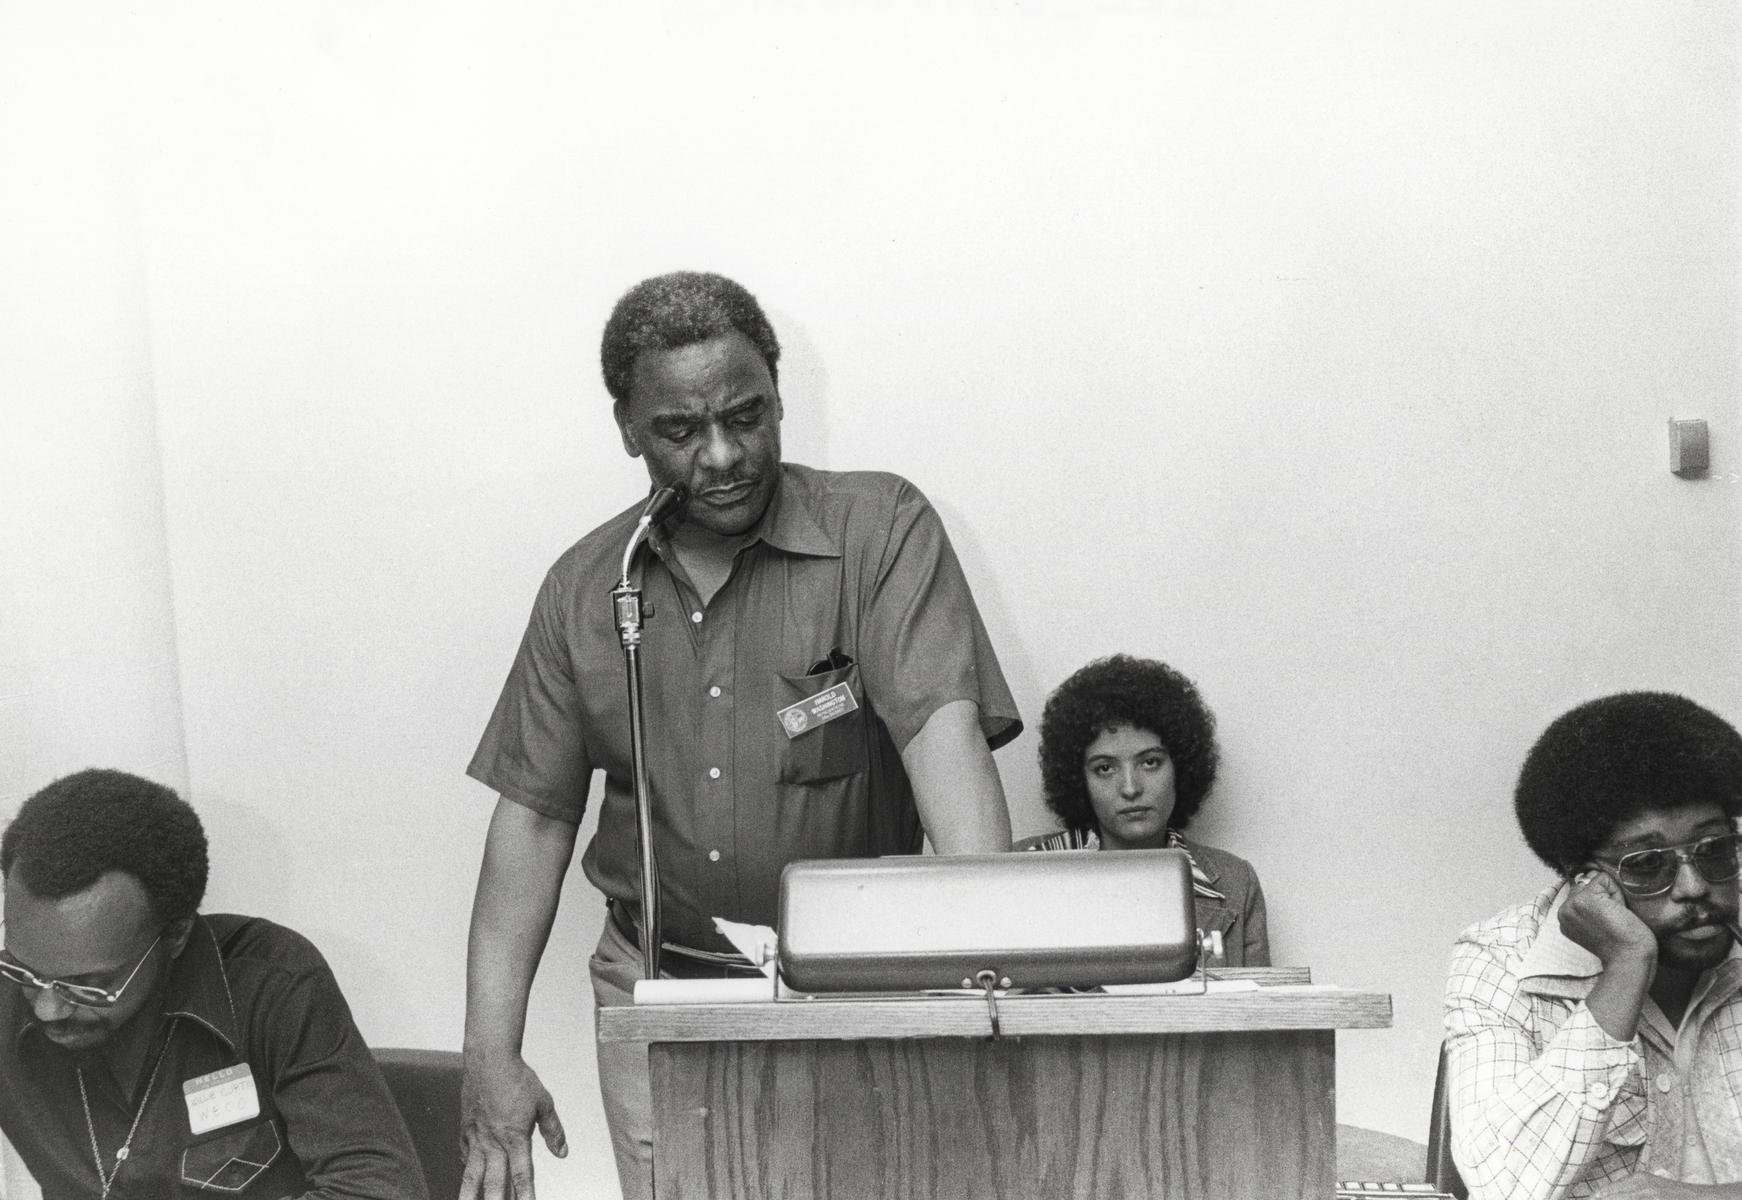 Harold Washington and others at a housing conference